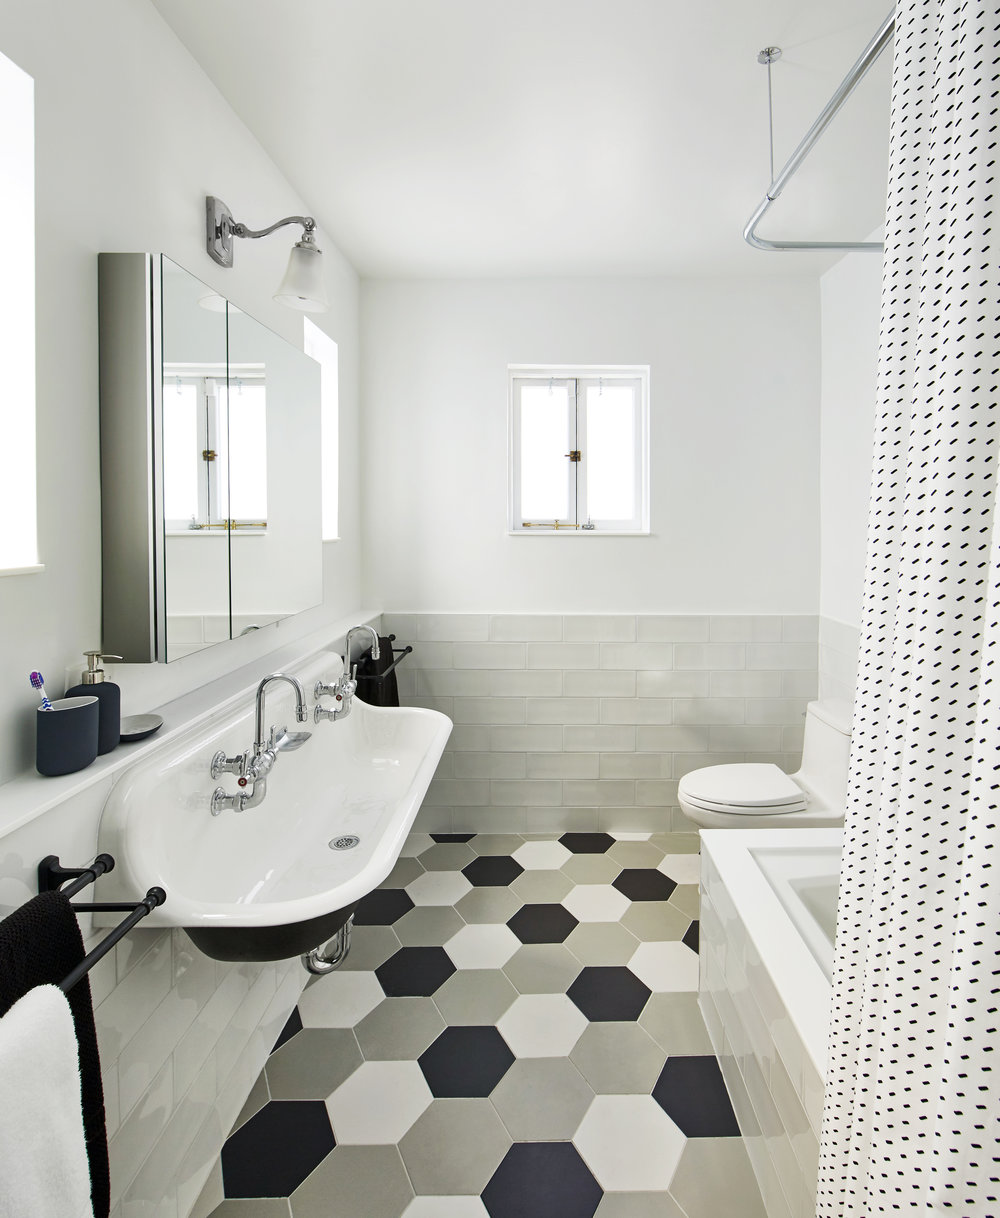 Neutral-Tones-Concrete-Tile-Bathroom-JMorris-Design-Interior-Designer-Brooklyn-New-York-Online.jpg